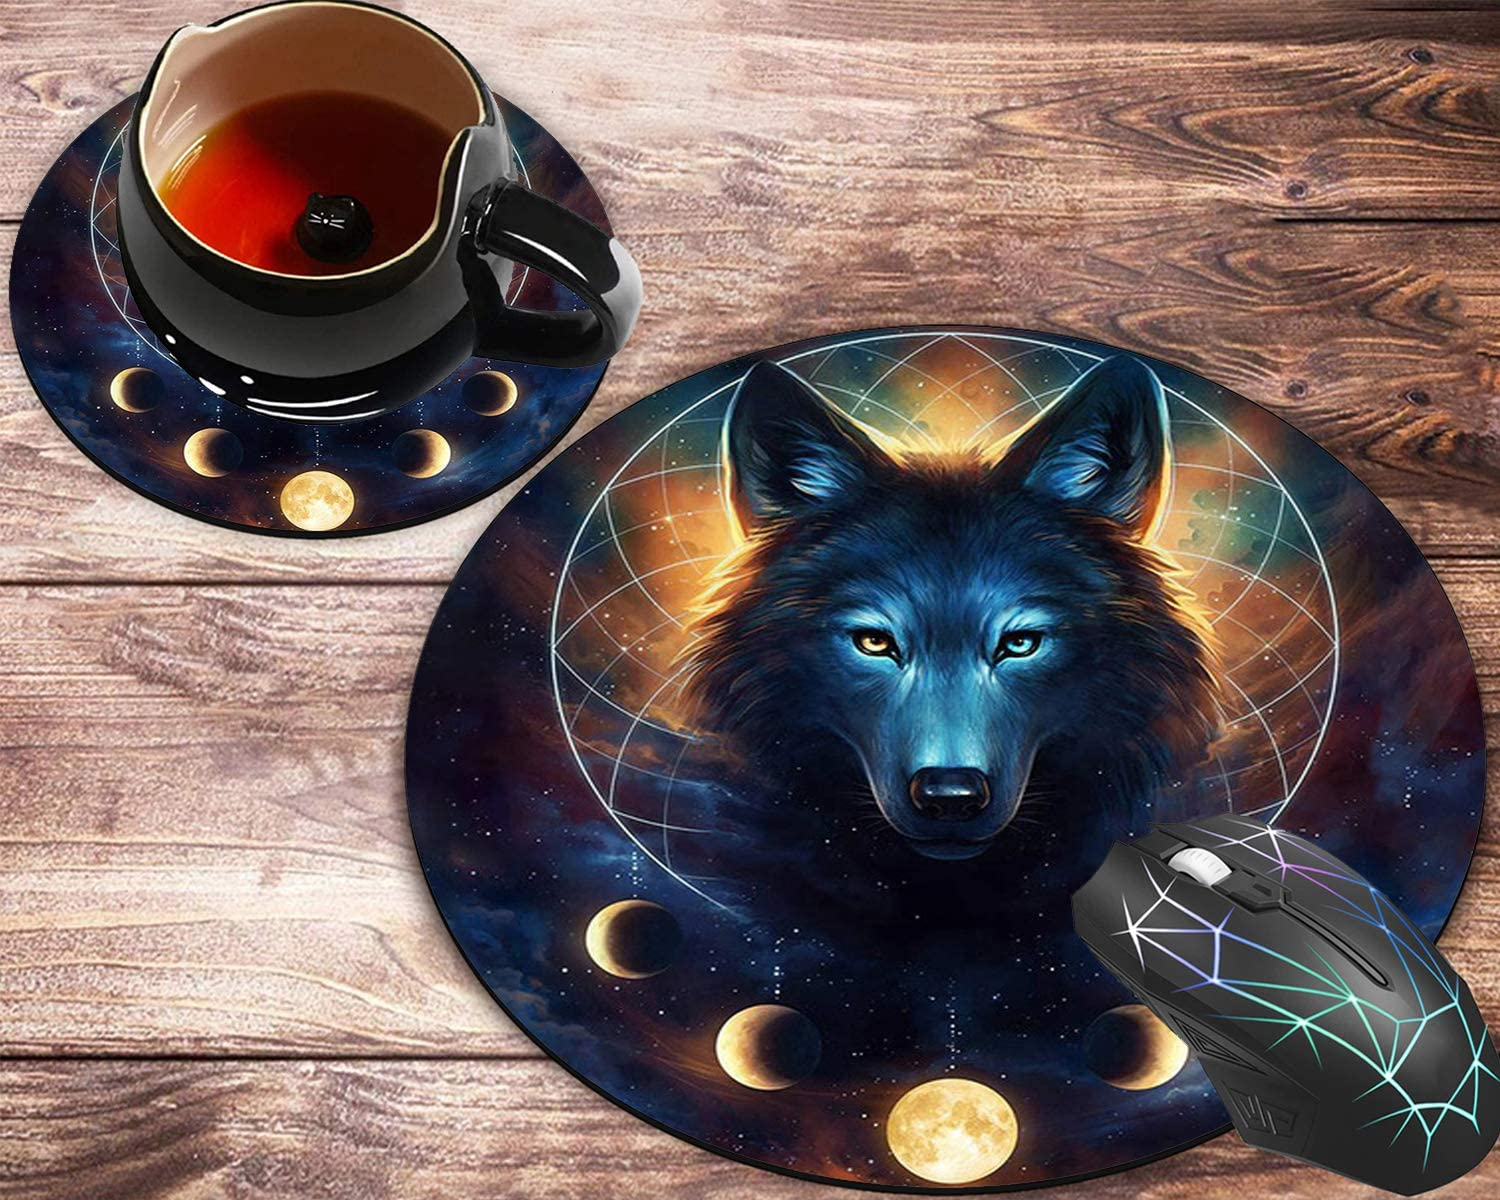 Round Mouse Pad and Coasters Set, Fantasy Wolf Moon Galaxy Mousepad, Non-Slip Rubber Round Mouse Pad, Customized Mouse Mat for Working and Gaming